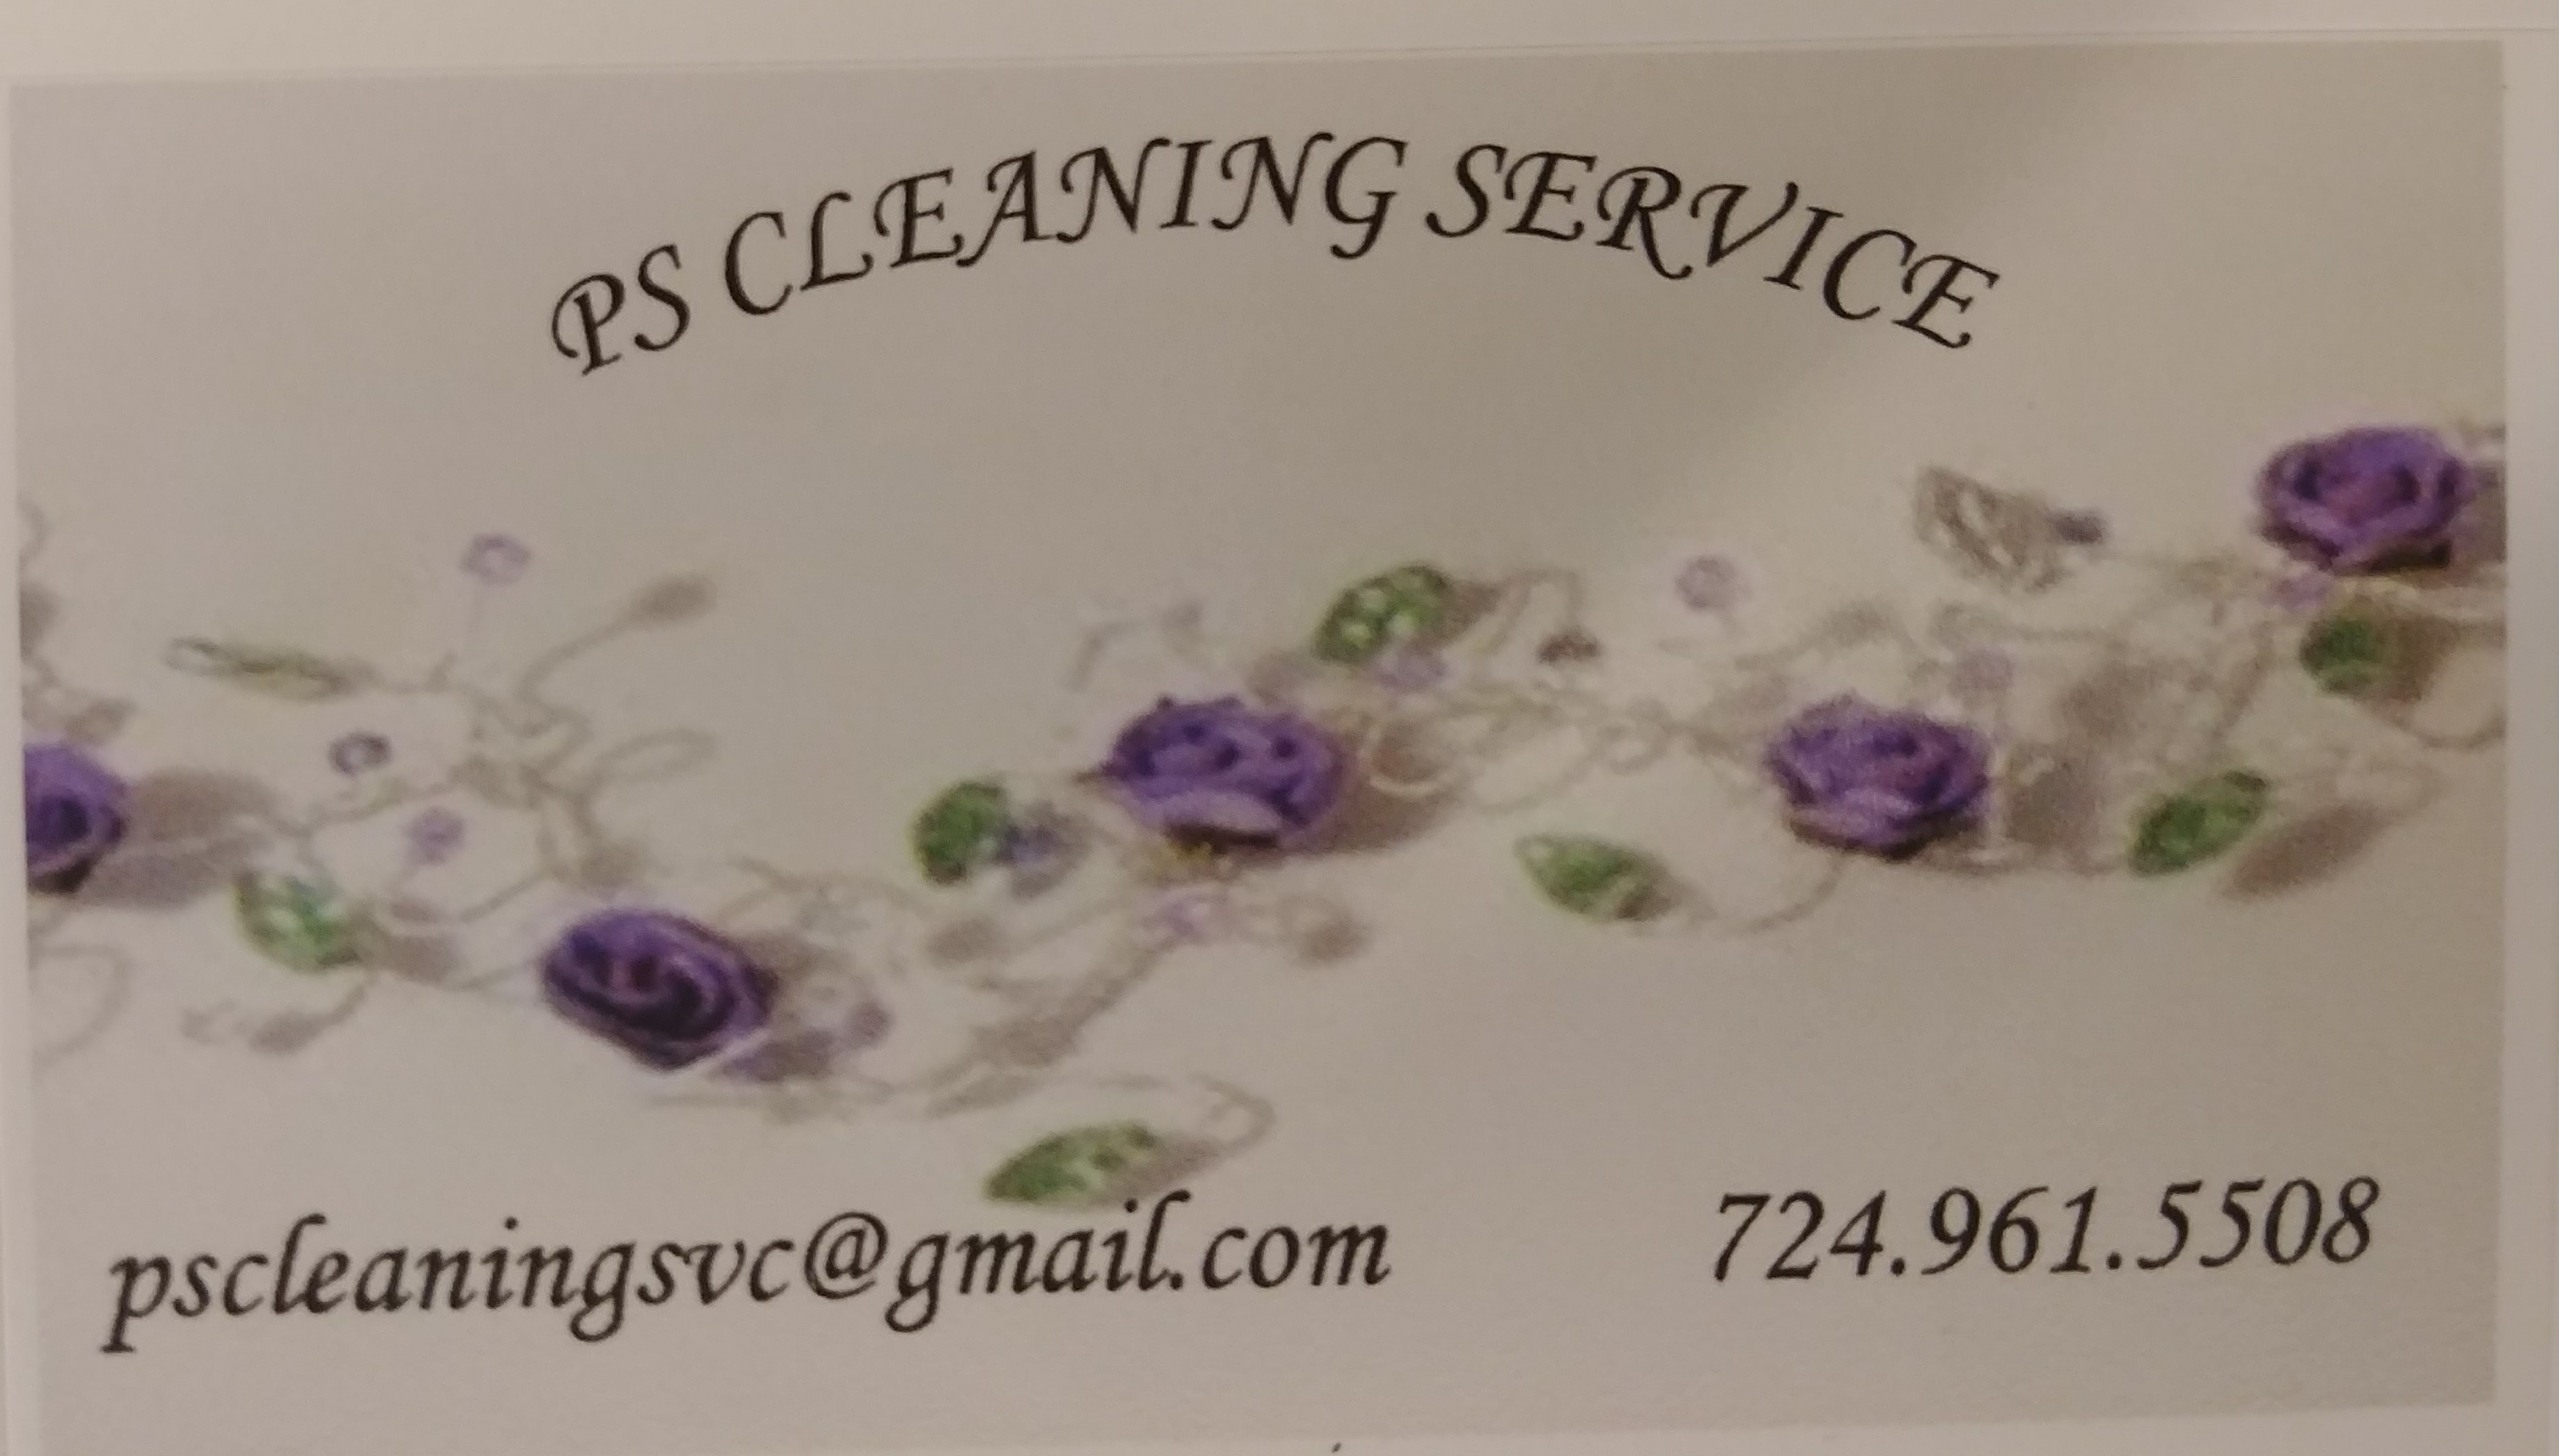 PS CLEANING Service